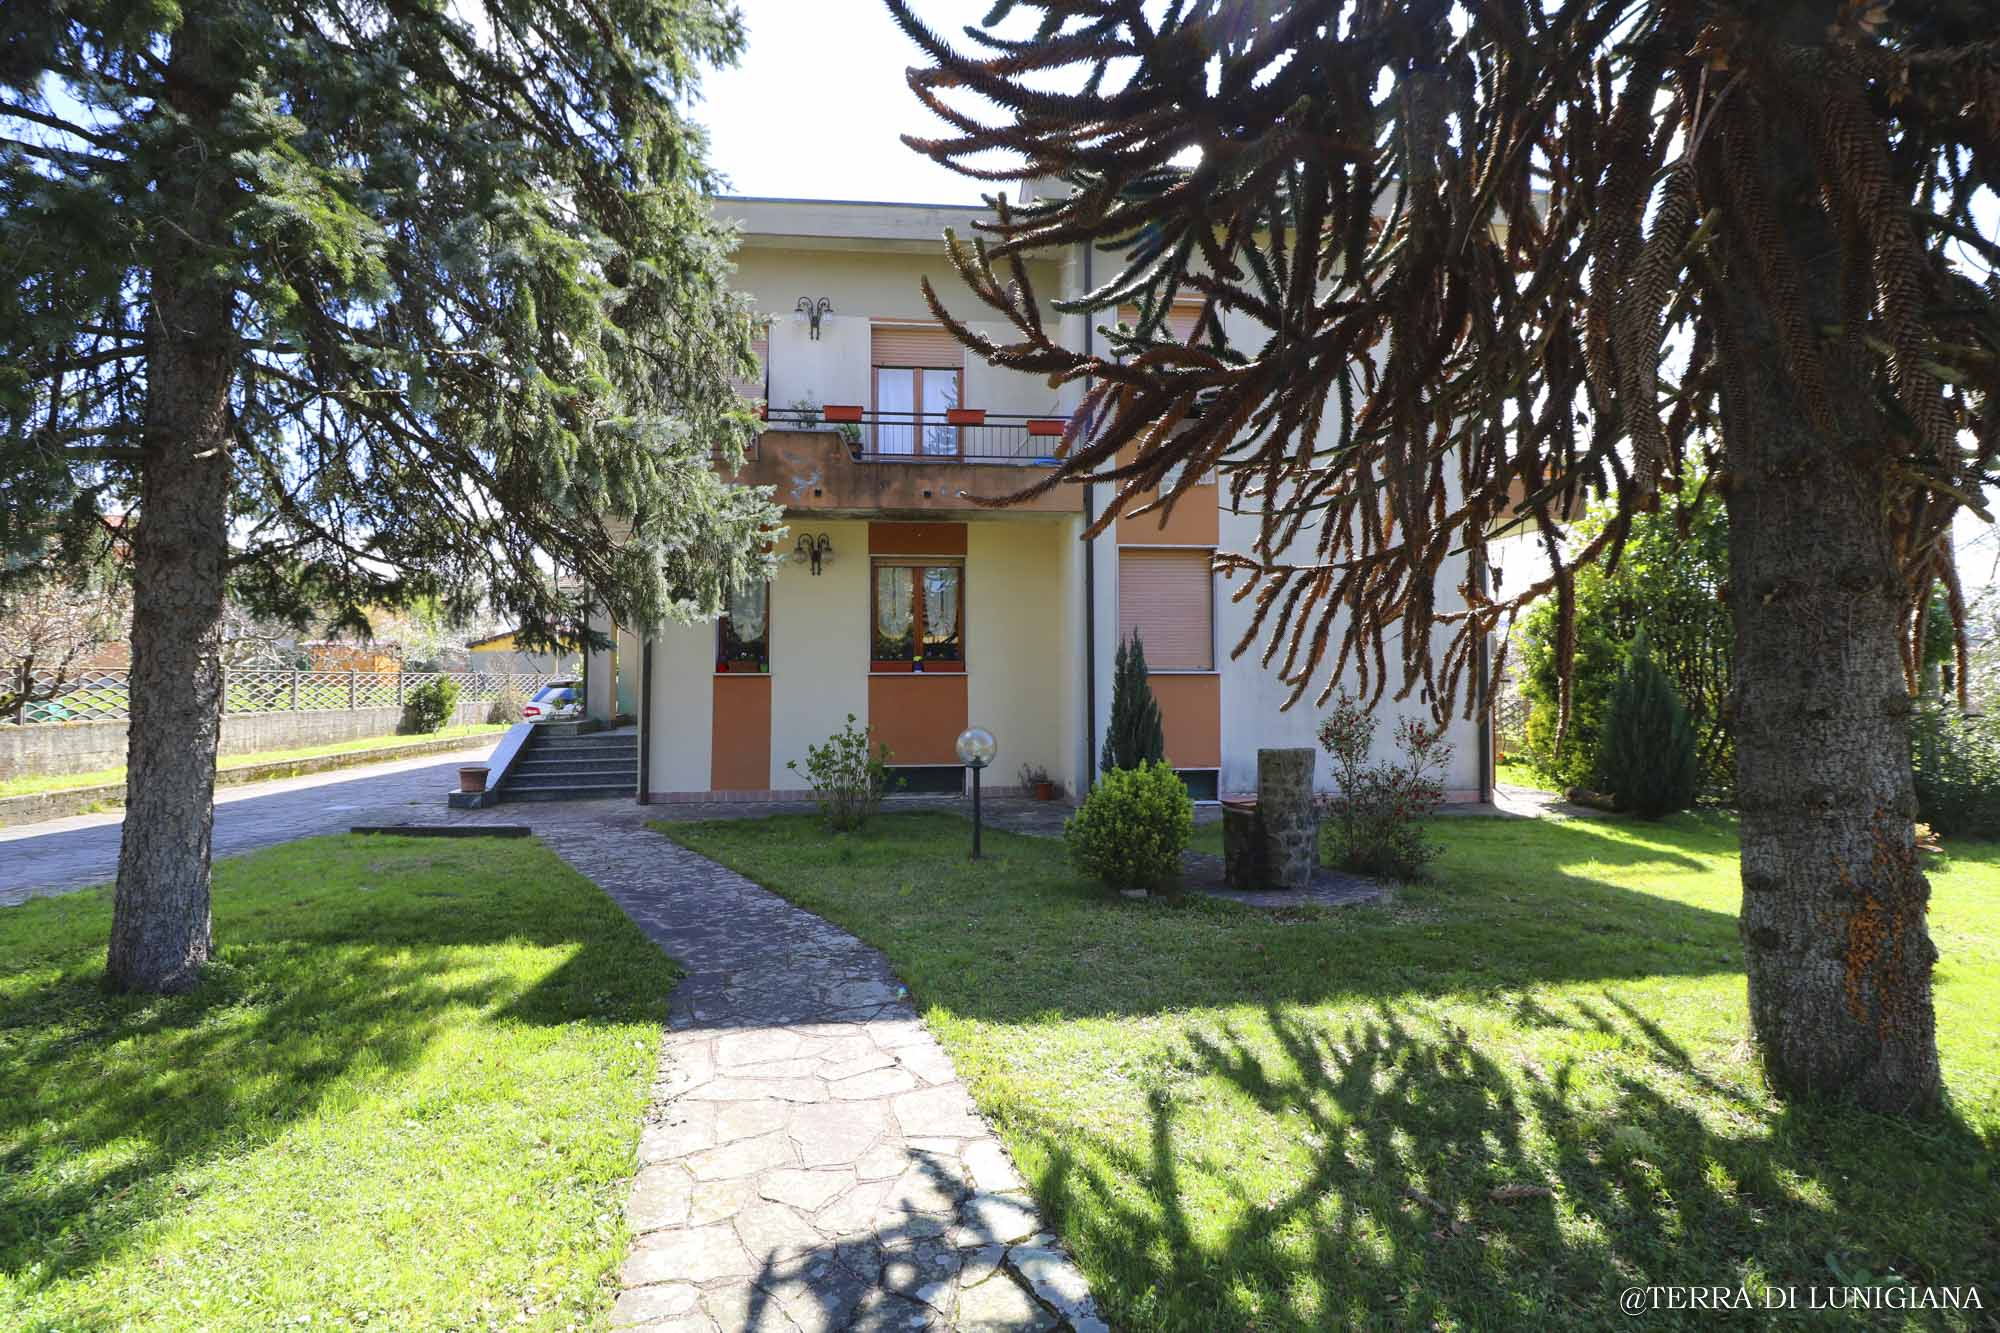 LA GIOVENTU' – Apartmen in Villa with Garden